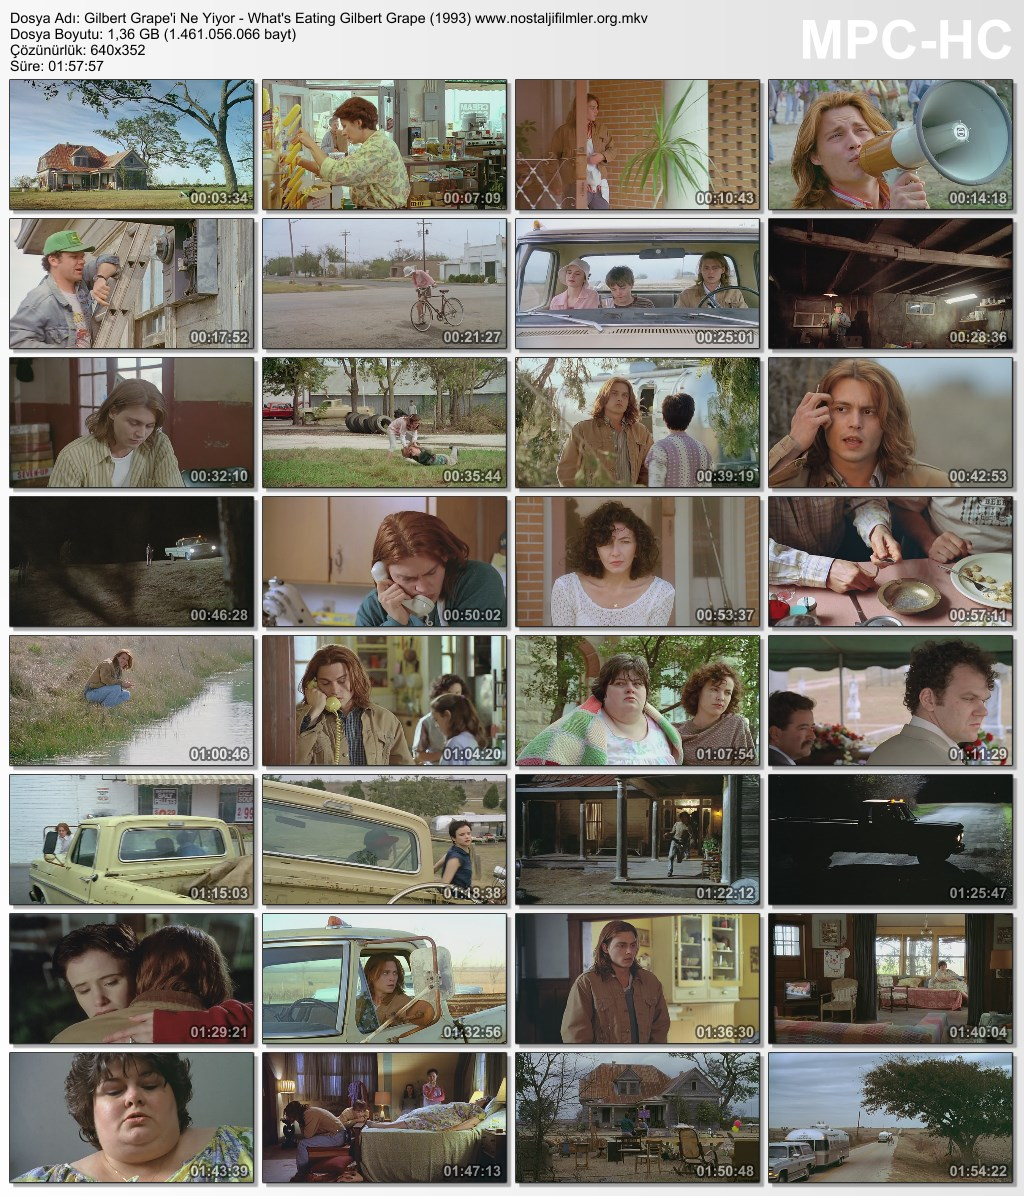 whats eating gilbert grape character becky Music and movies essays: what's eating gilbert grape- becky - character review.